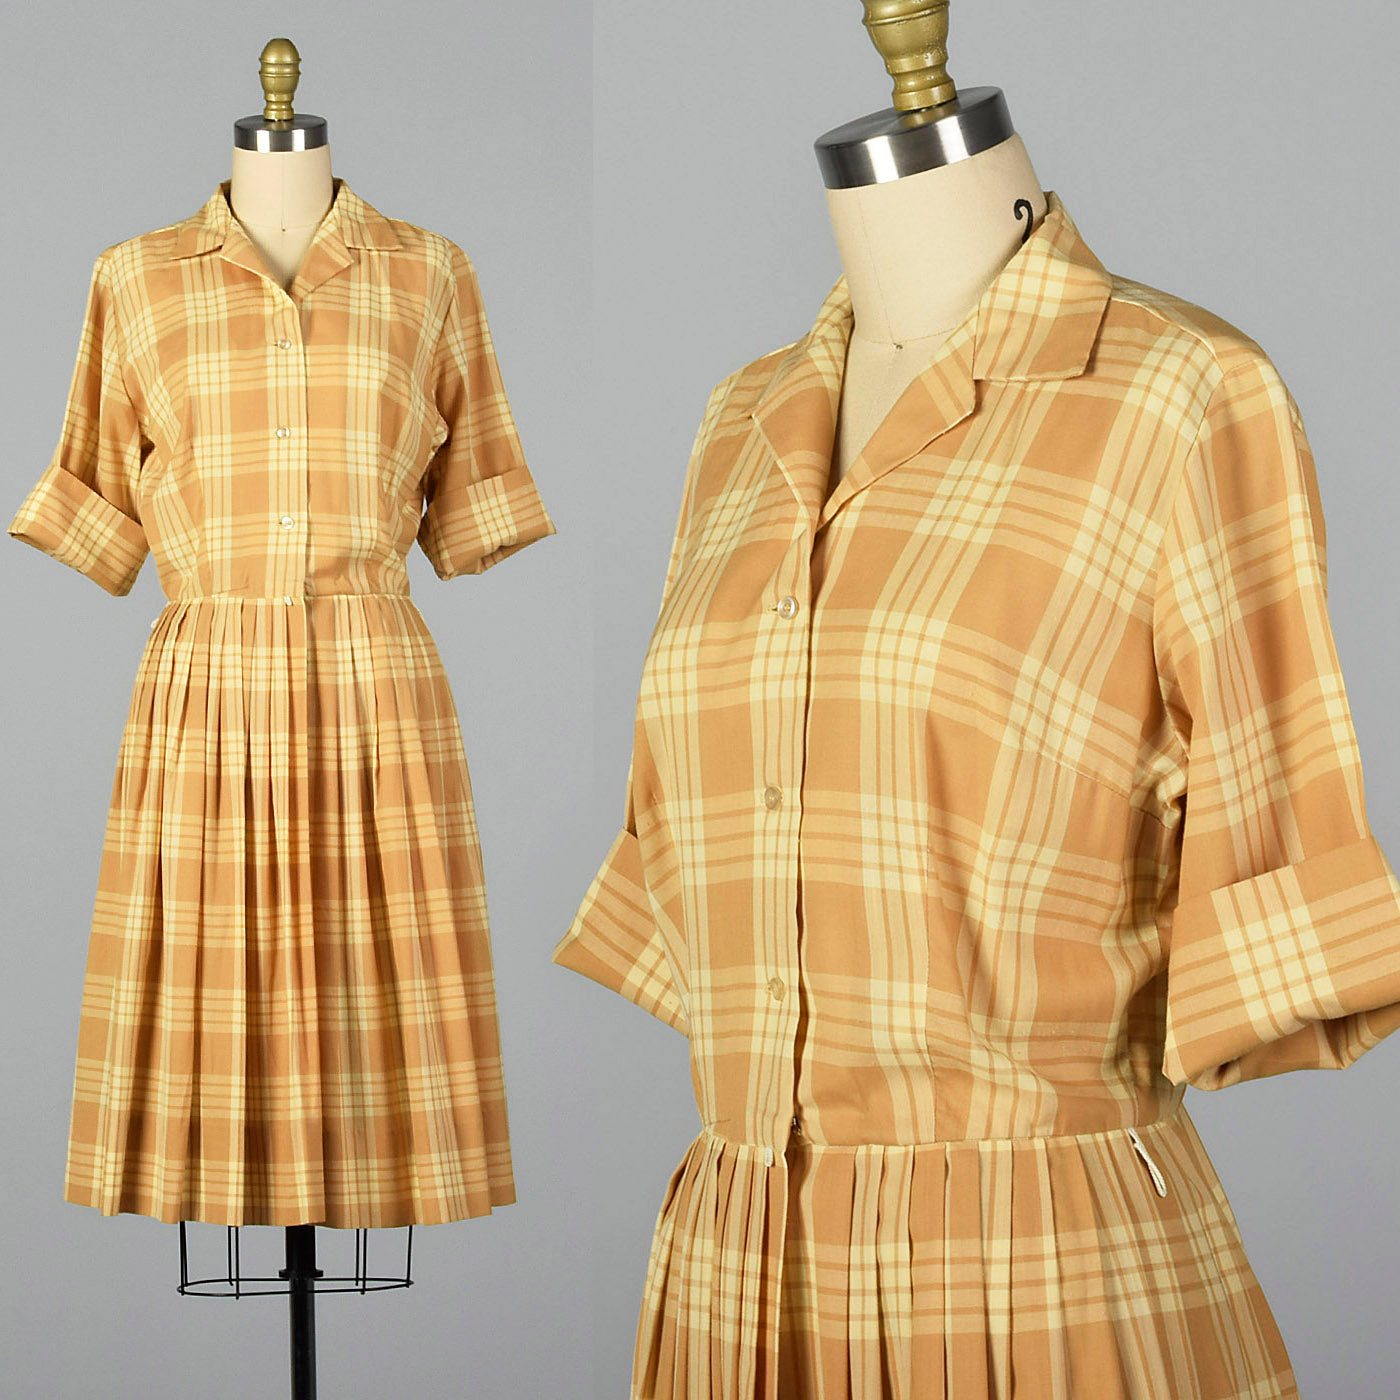 1960s Plaid Shirtwaist Dress with Vented Back